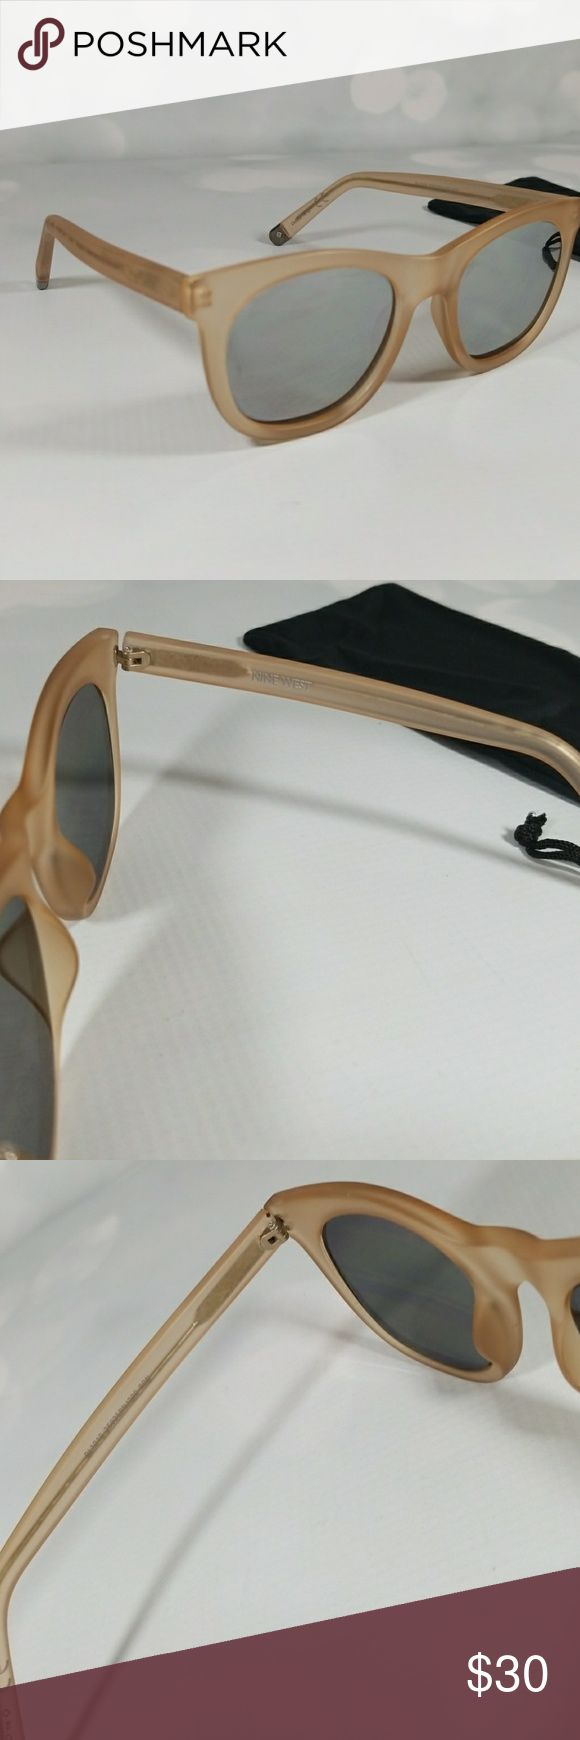 Nine west sunglasses No scratches. Clear beige. Mirror lense. Open to offers please use offer button. Nine West Accessories Sunglasses